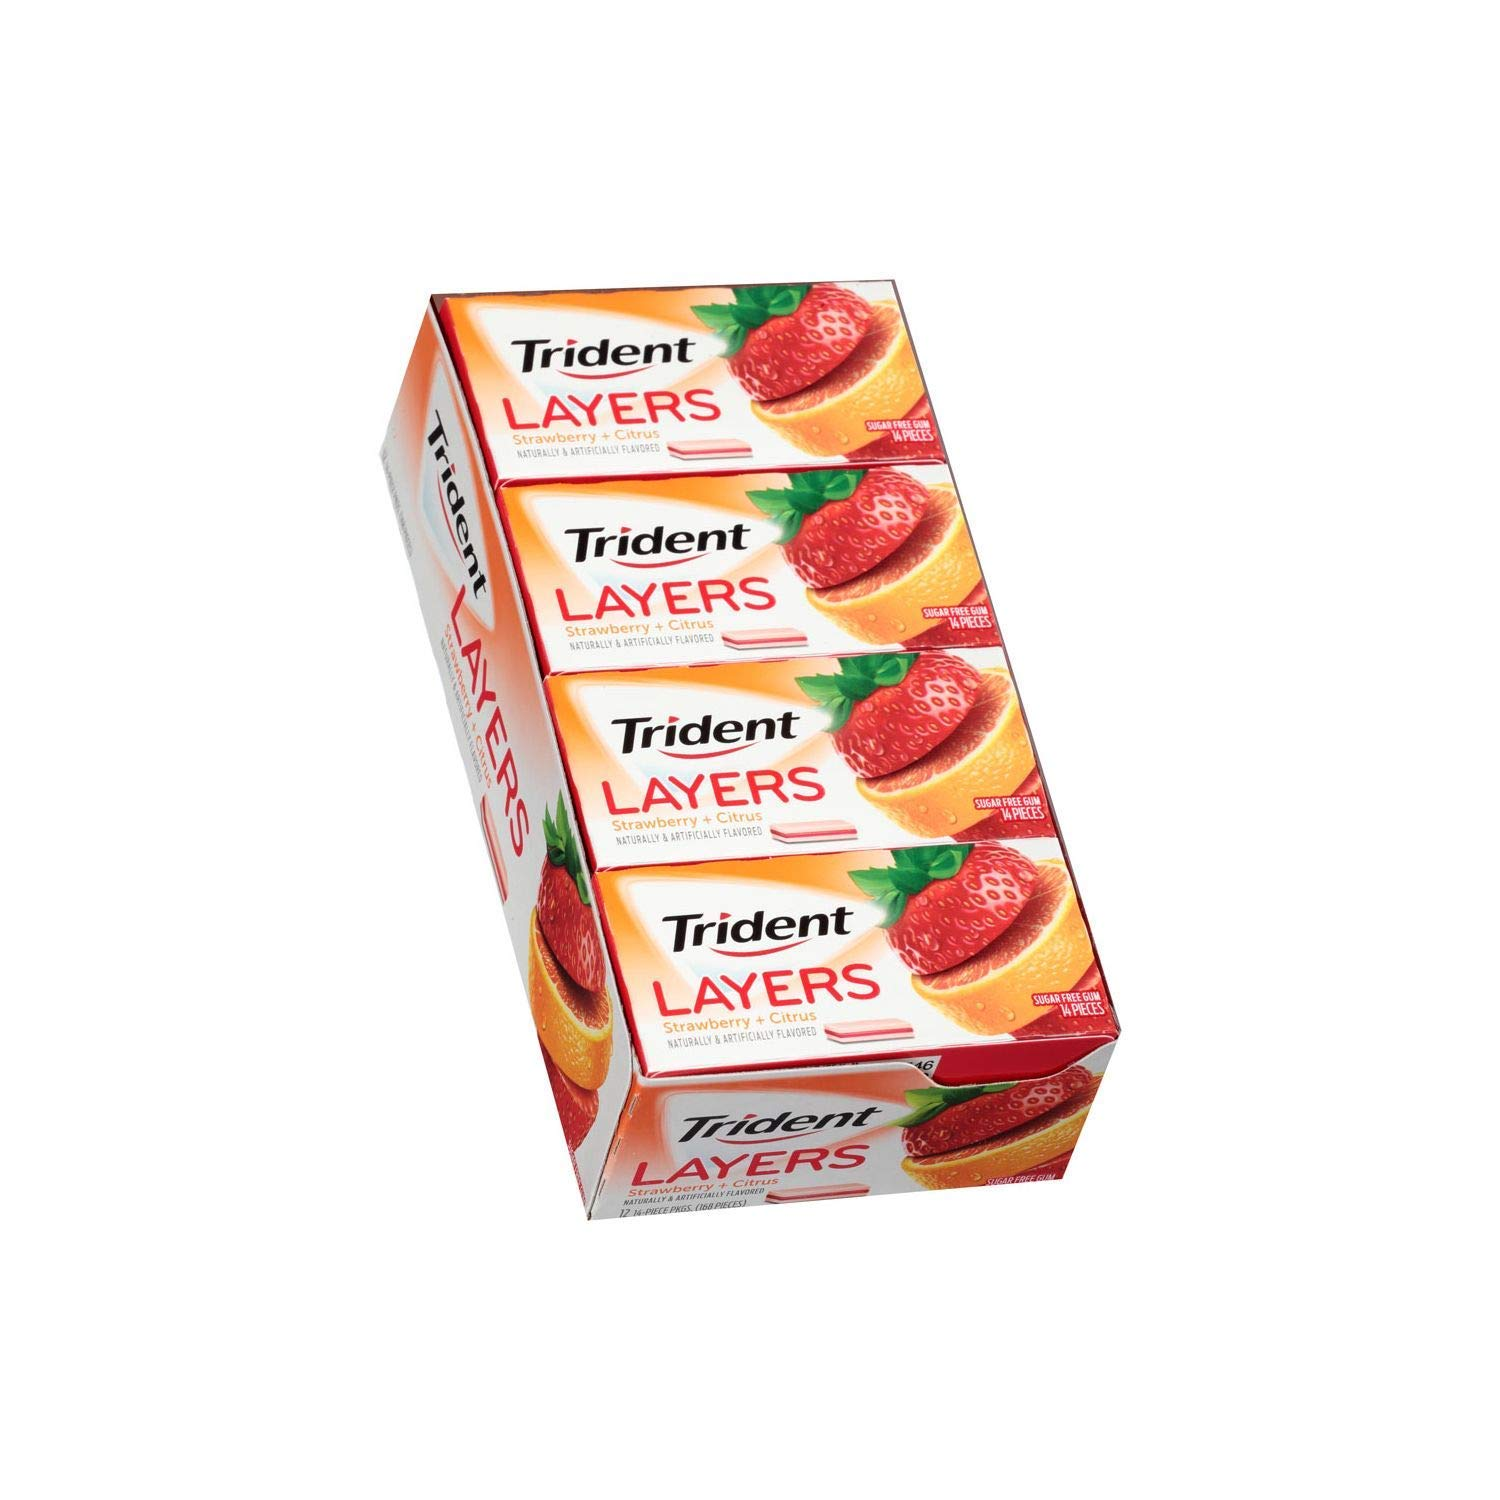 Trident Layers Strawberry Regular discount and Tangy Citrus 10 14 ct packs. - Manufacturer regenerated product